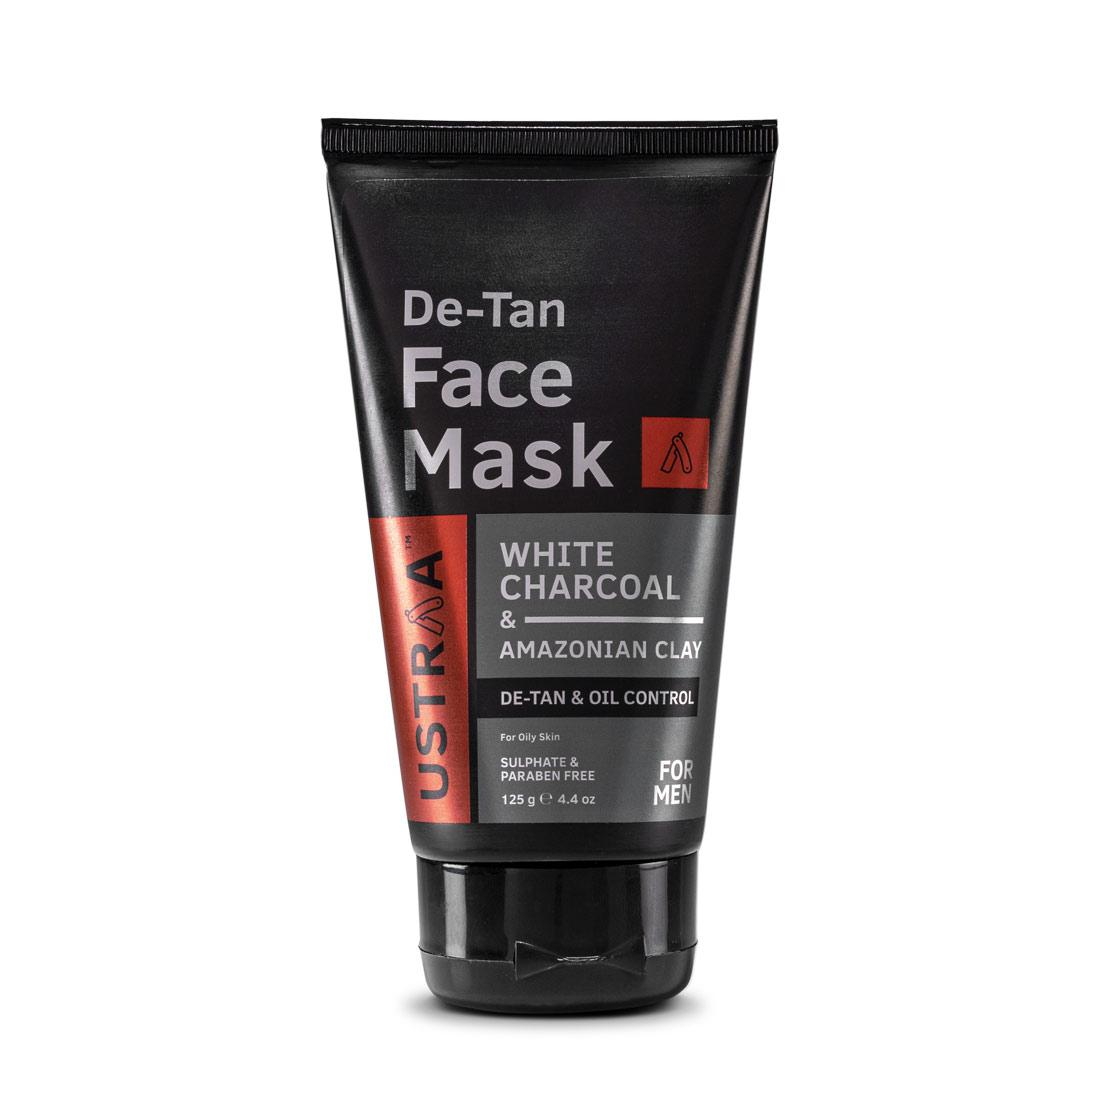 Ustraa De Tan Face Mask for Men with Oily Skin 125 g - For Tan Removal and Even Skin Tone with White Charcoal, Aloe Vera, Kaolin Clay and Olive Oil